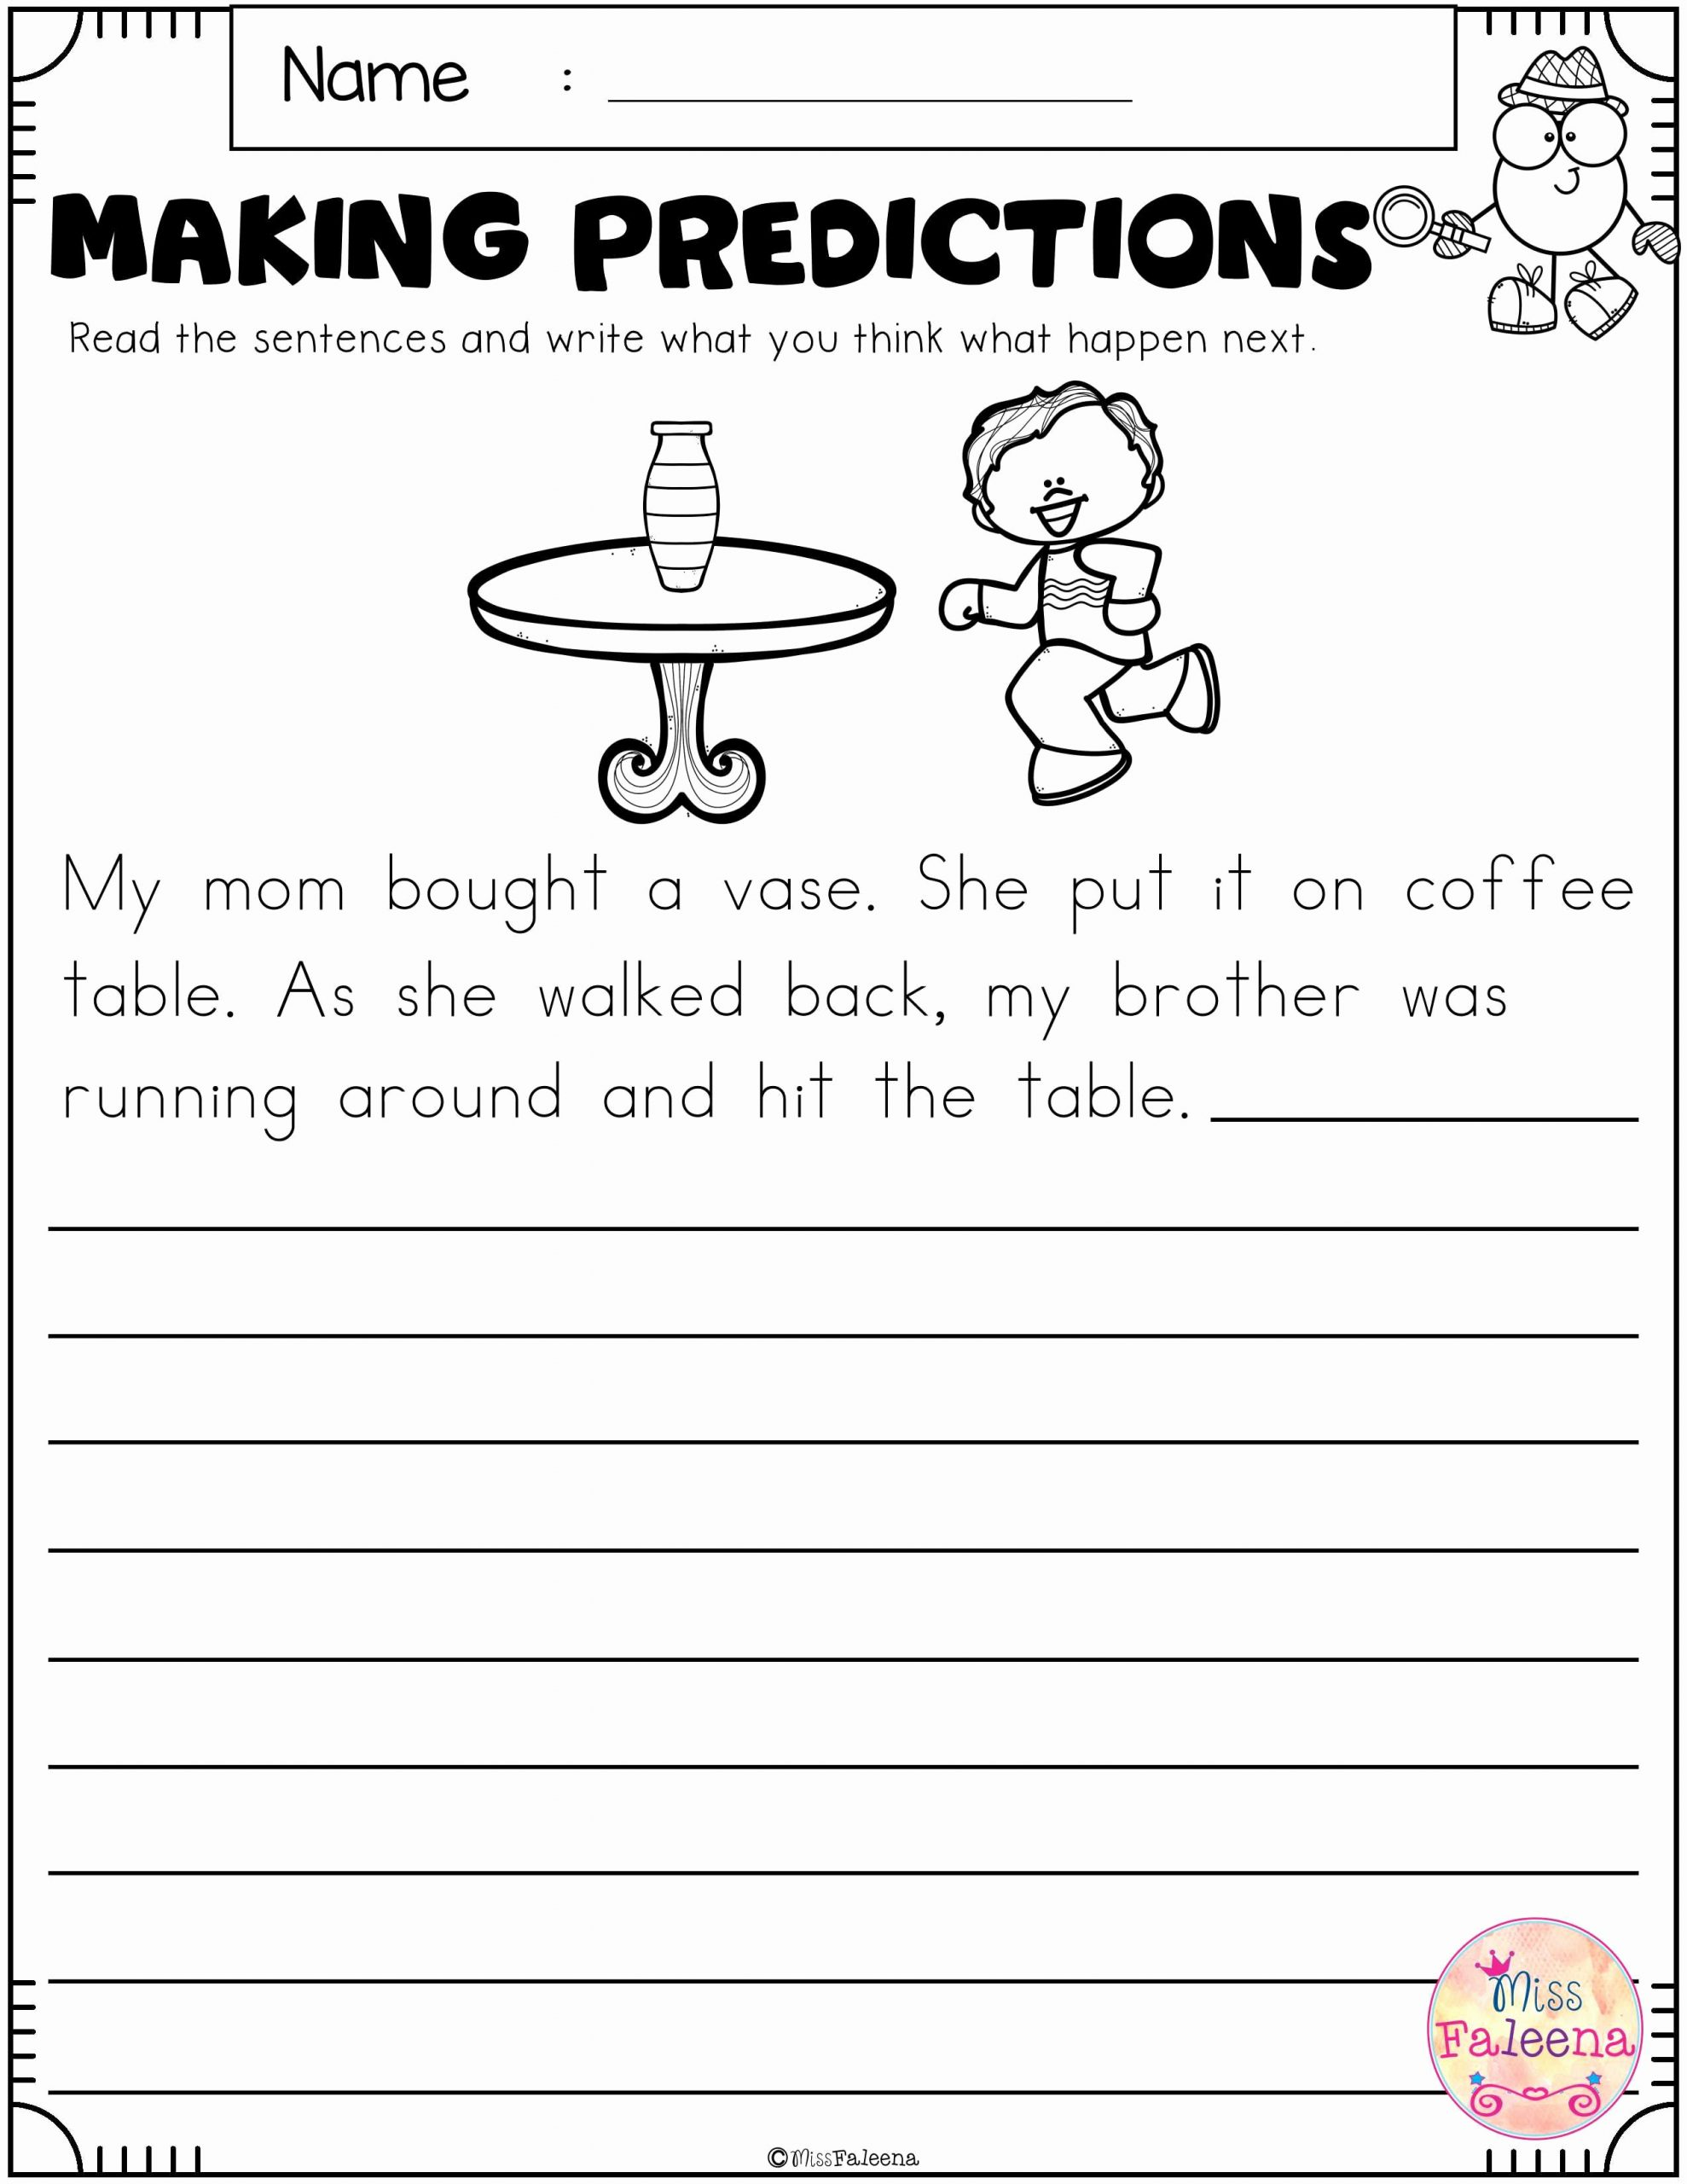 Prediction Worksheets for 3rd Grade Luxury Free Making Predictions with Images